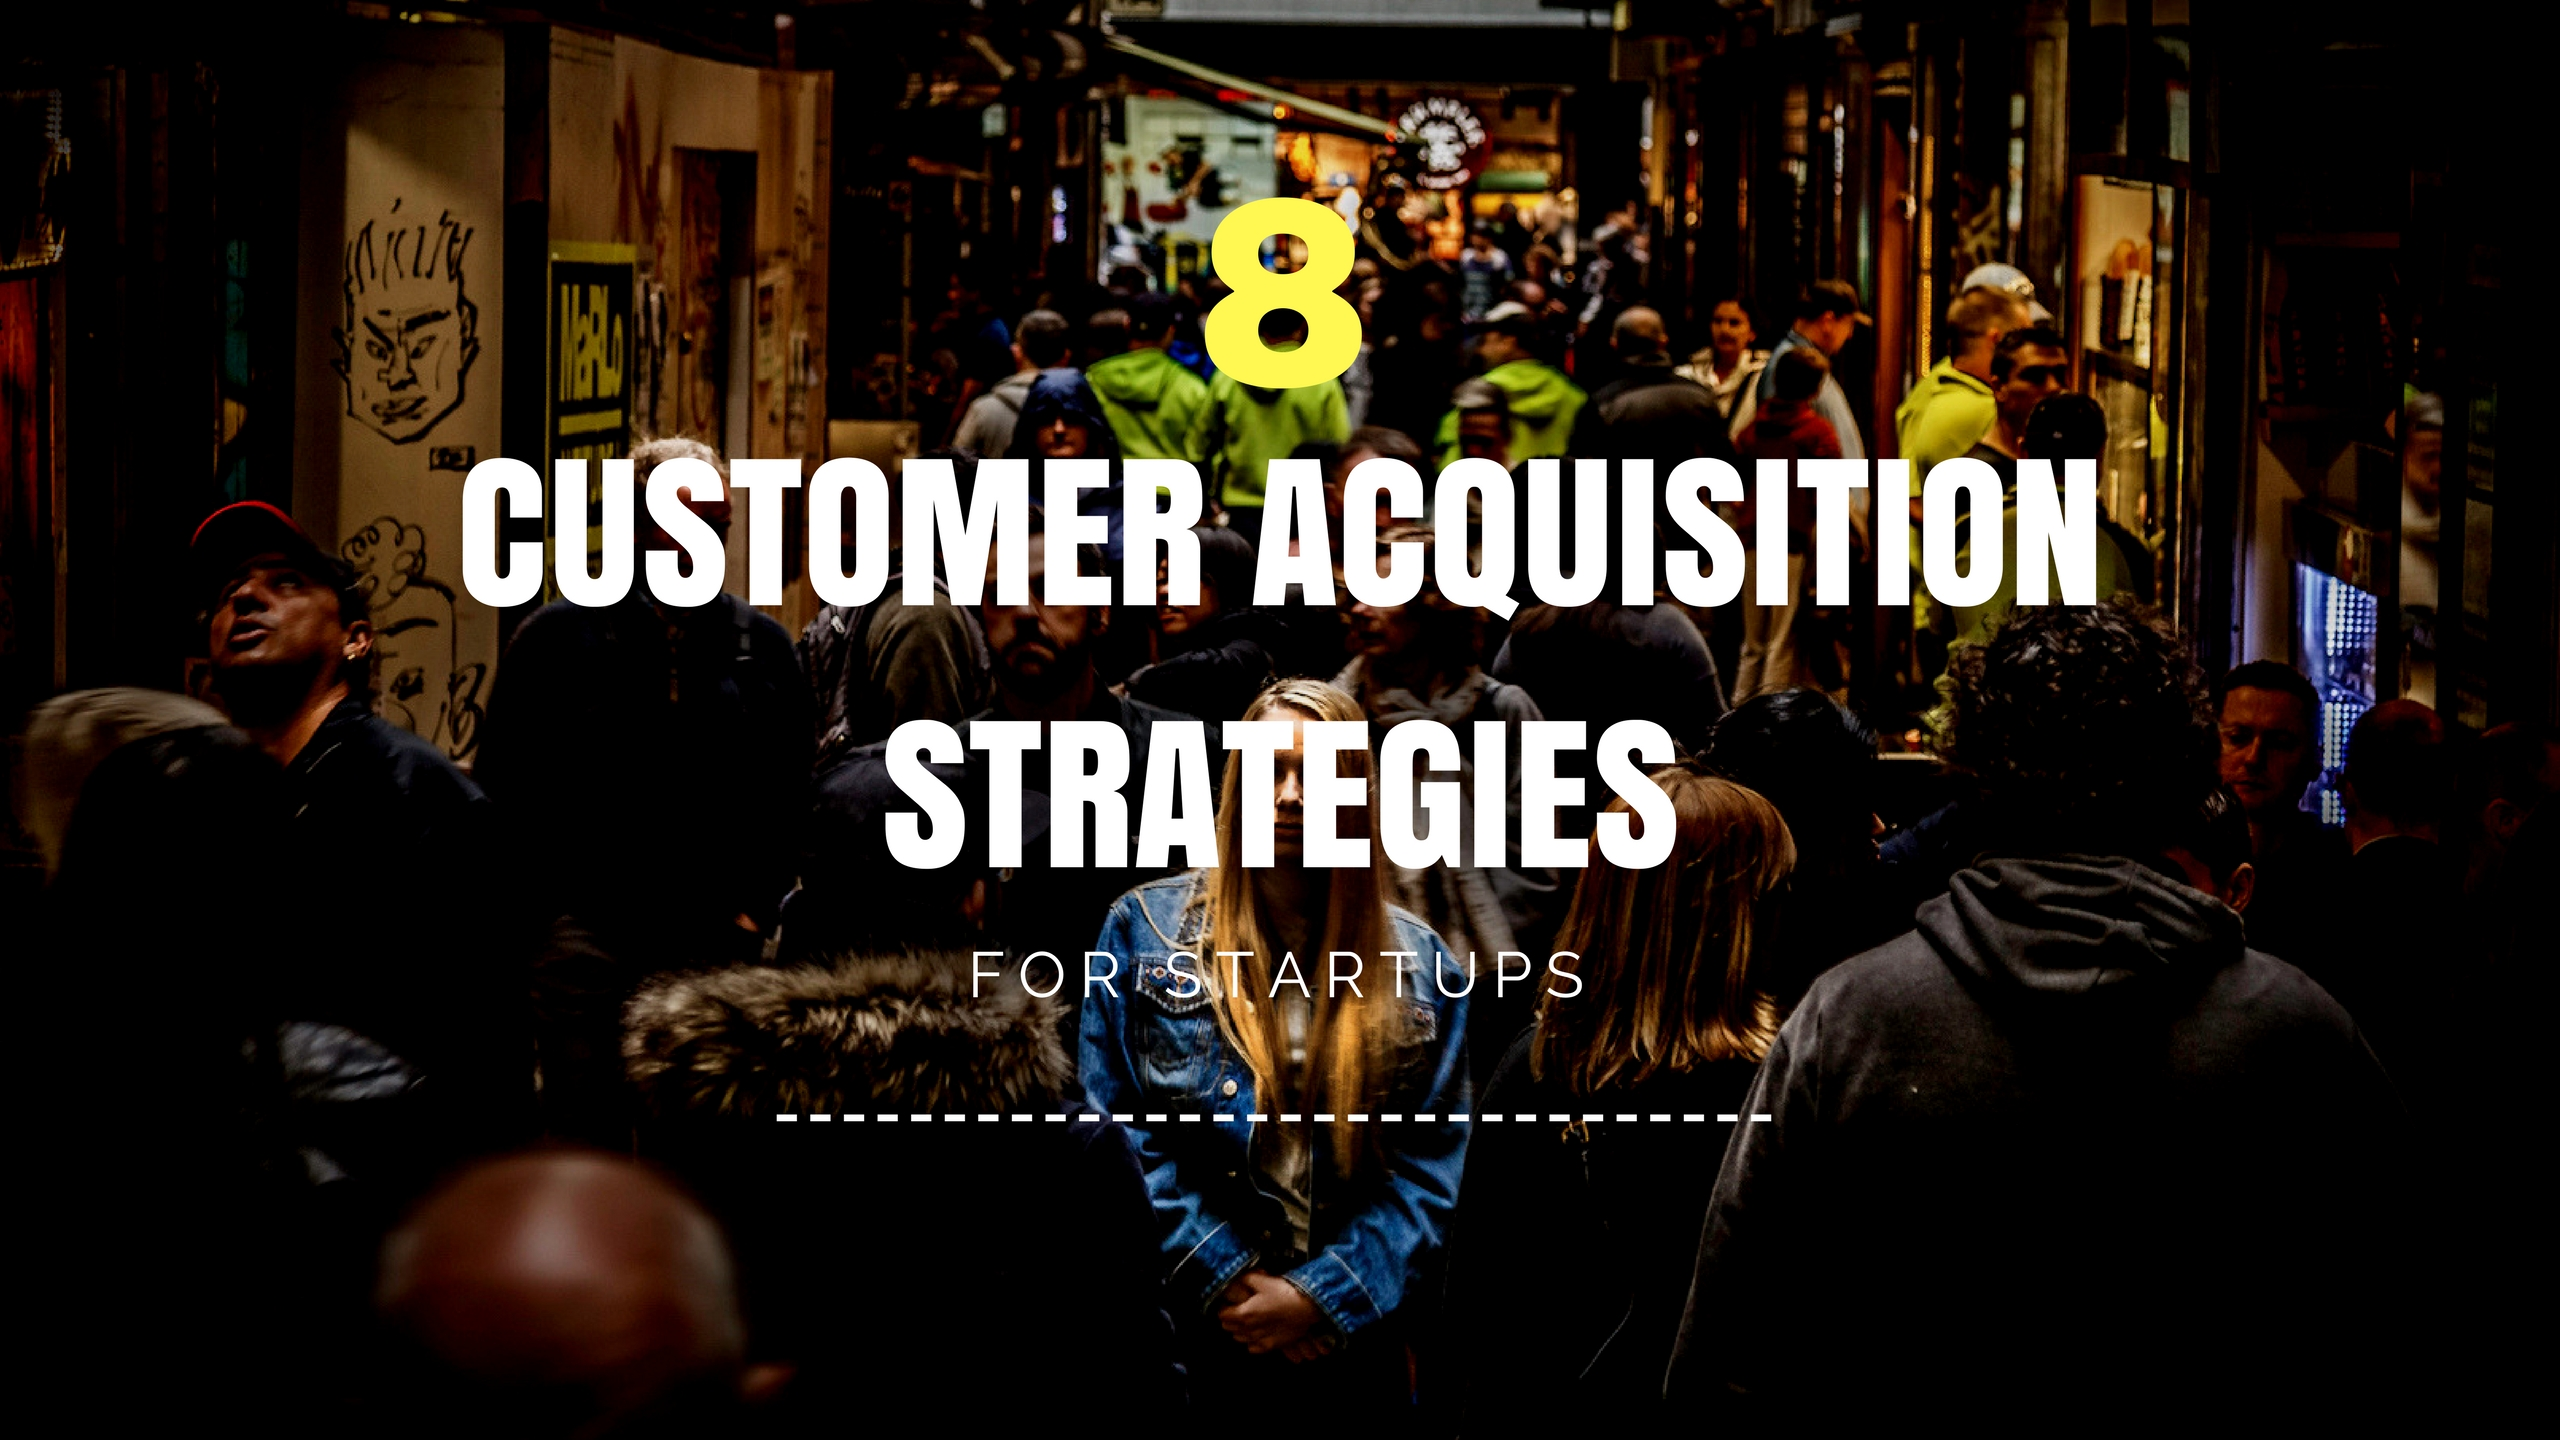 8 Proven Customer Acquisition Strategies For Startups